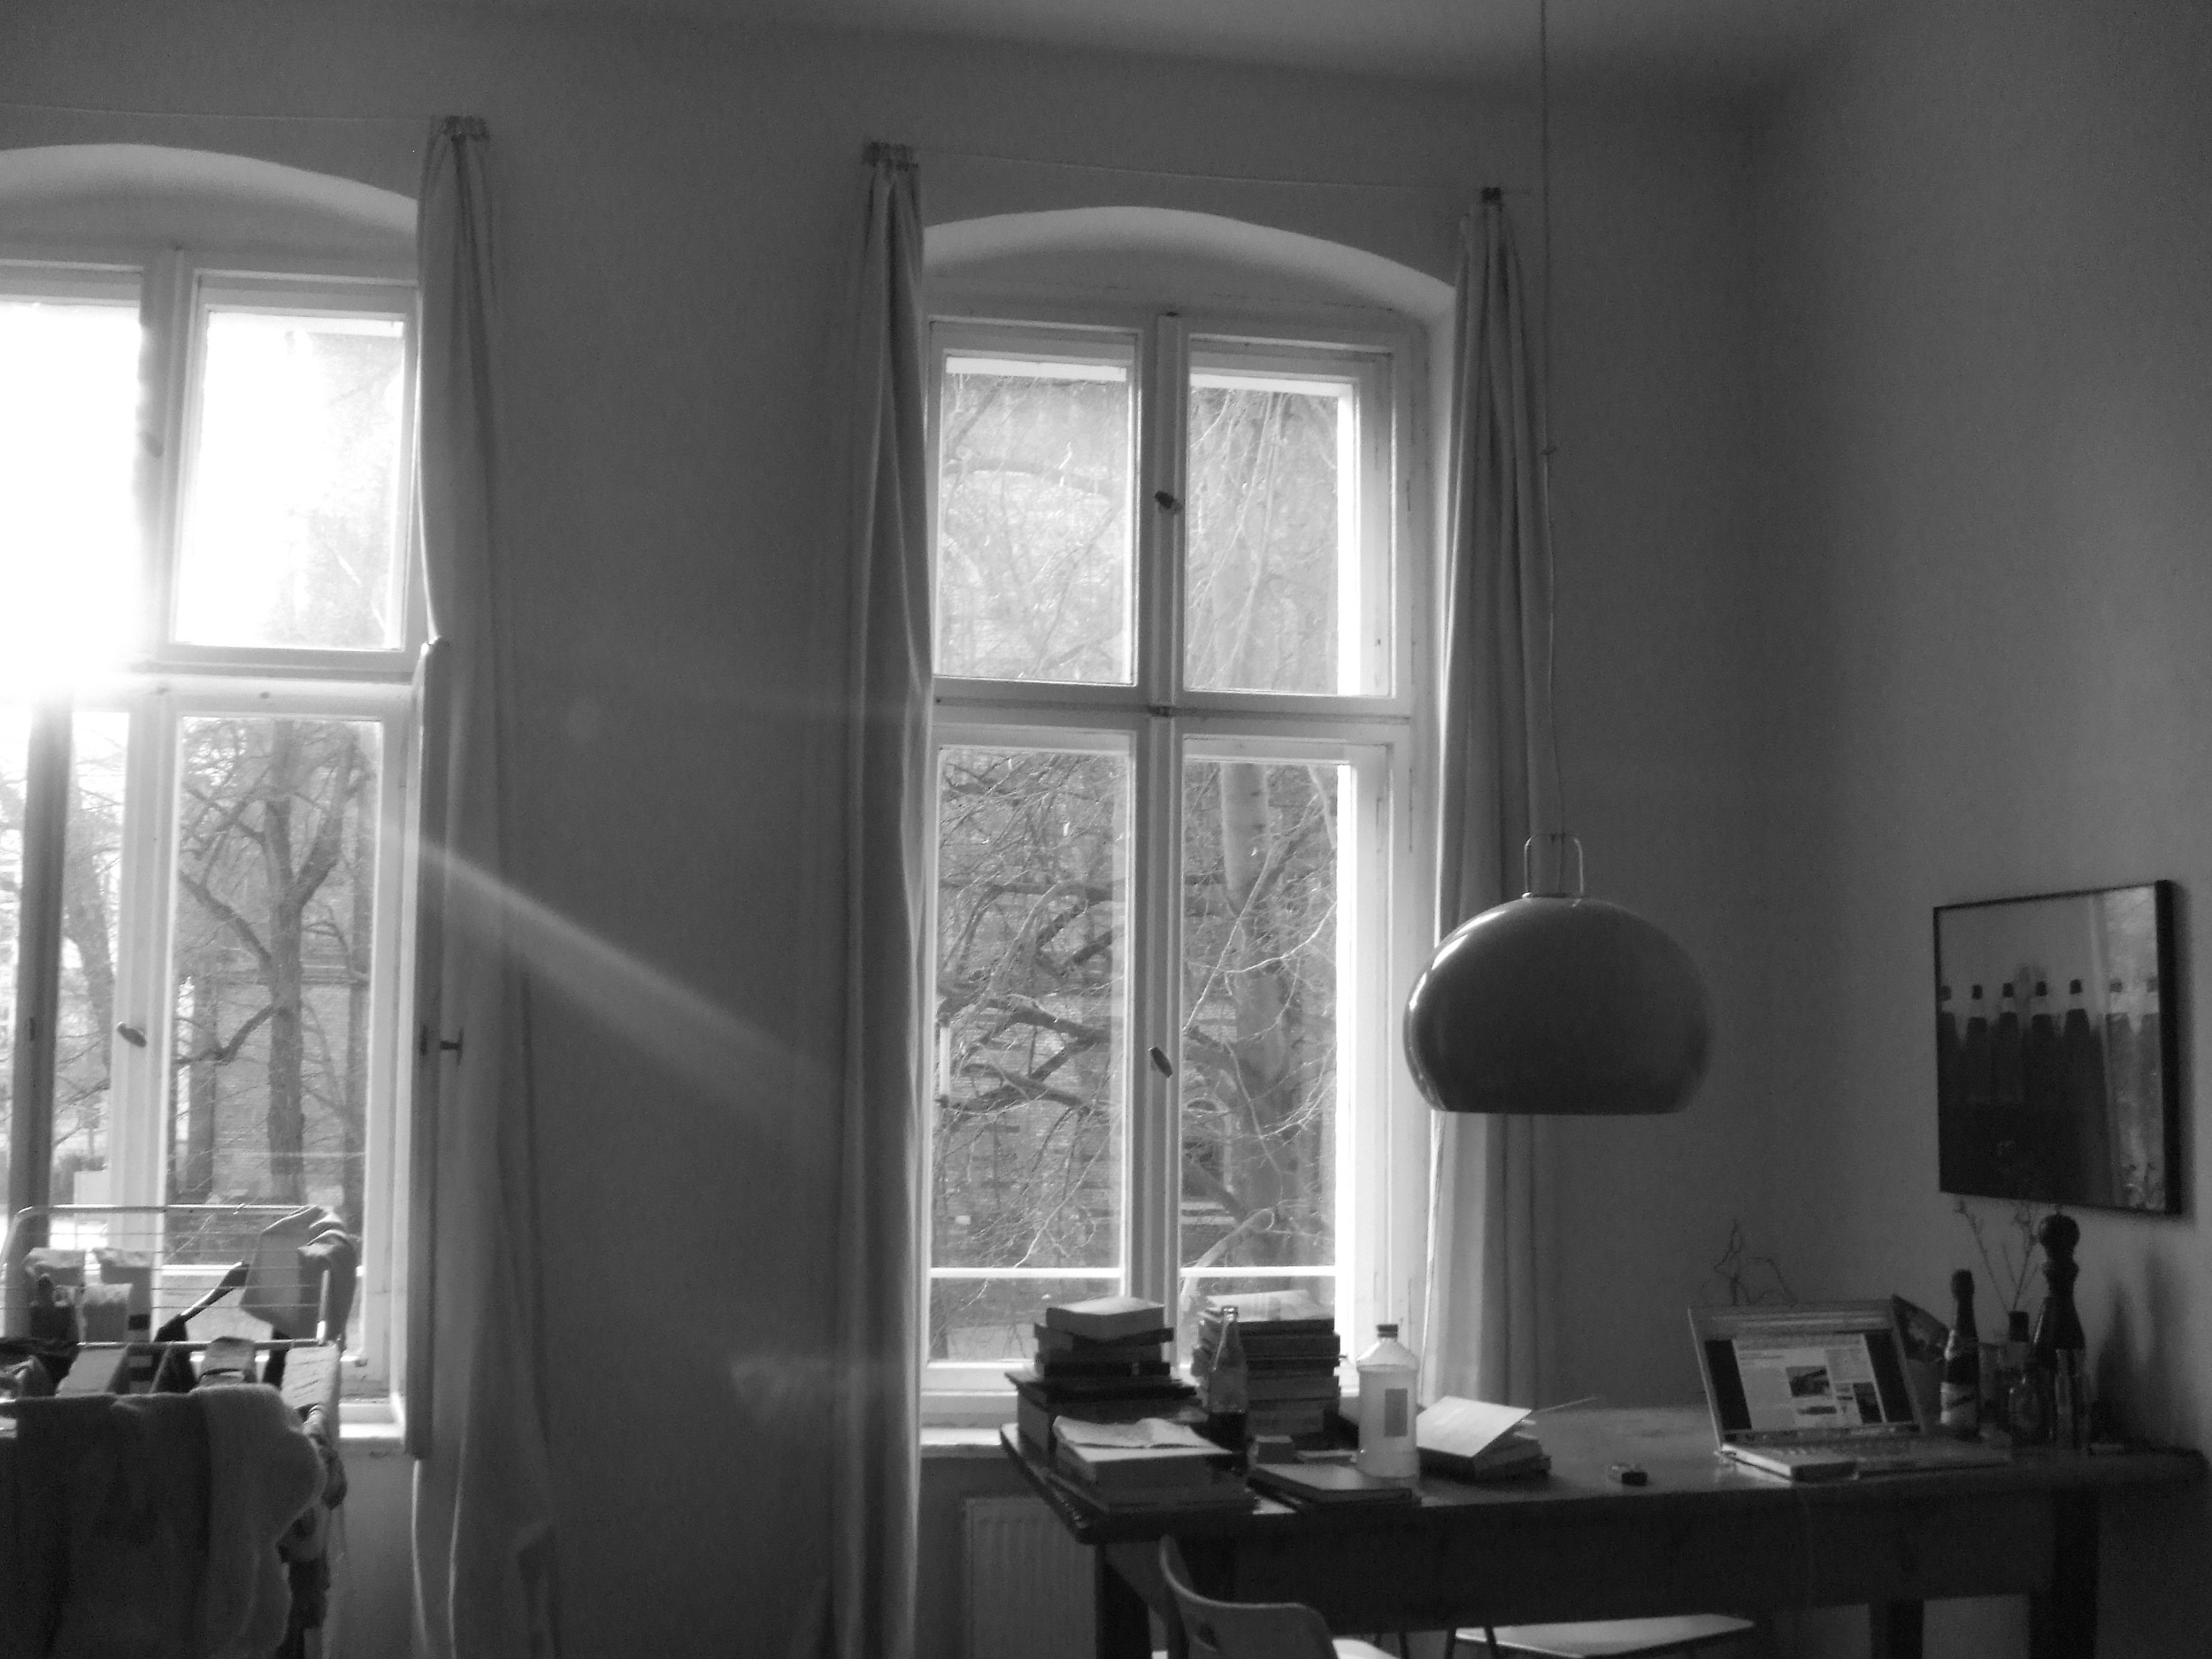 My Berlin apartment on Zionskirchstraße, 2007